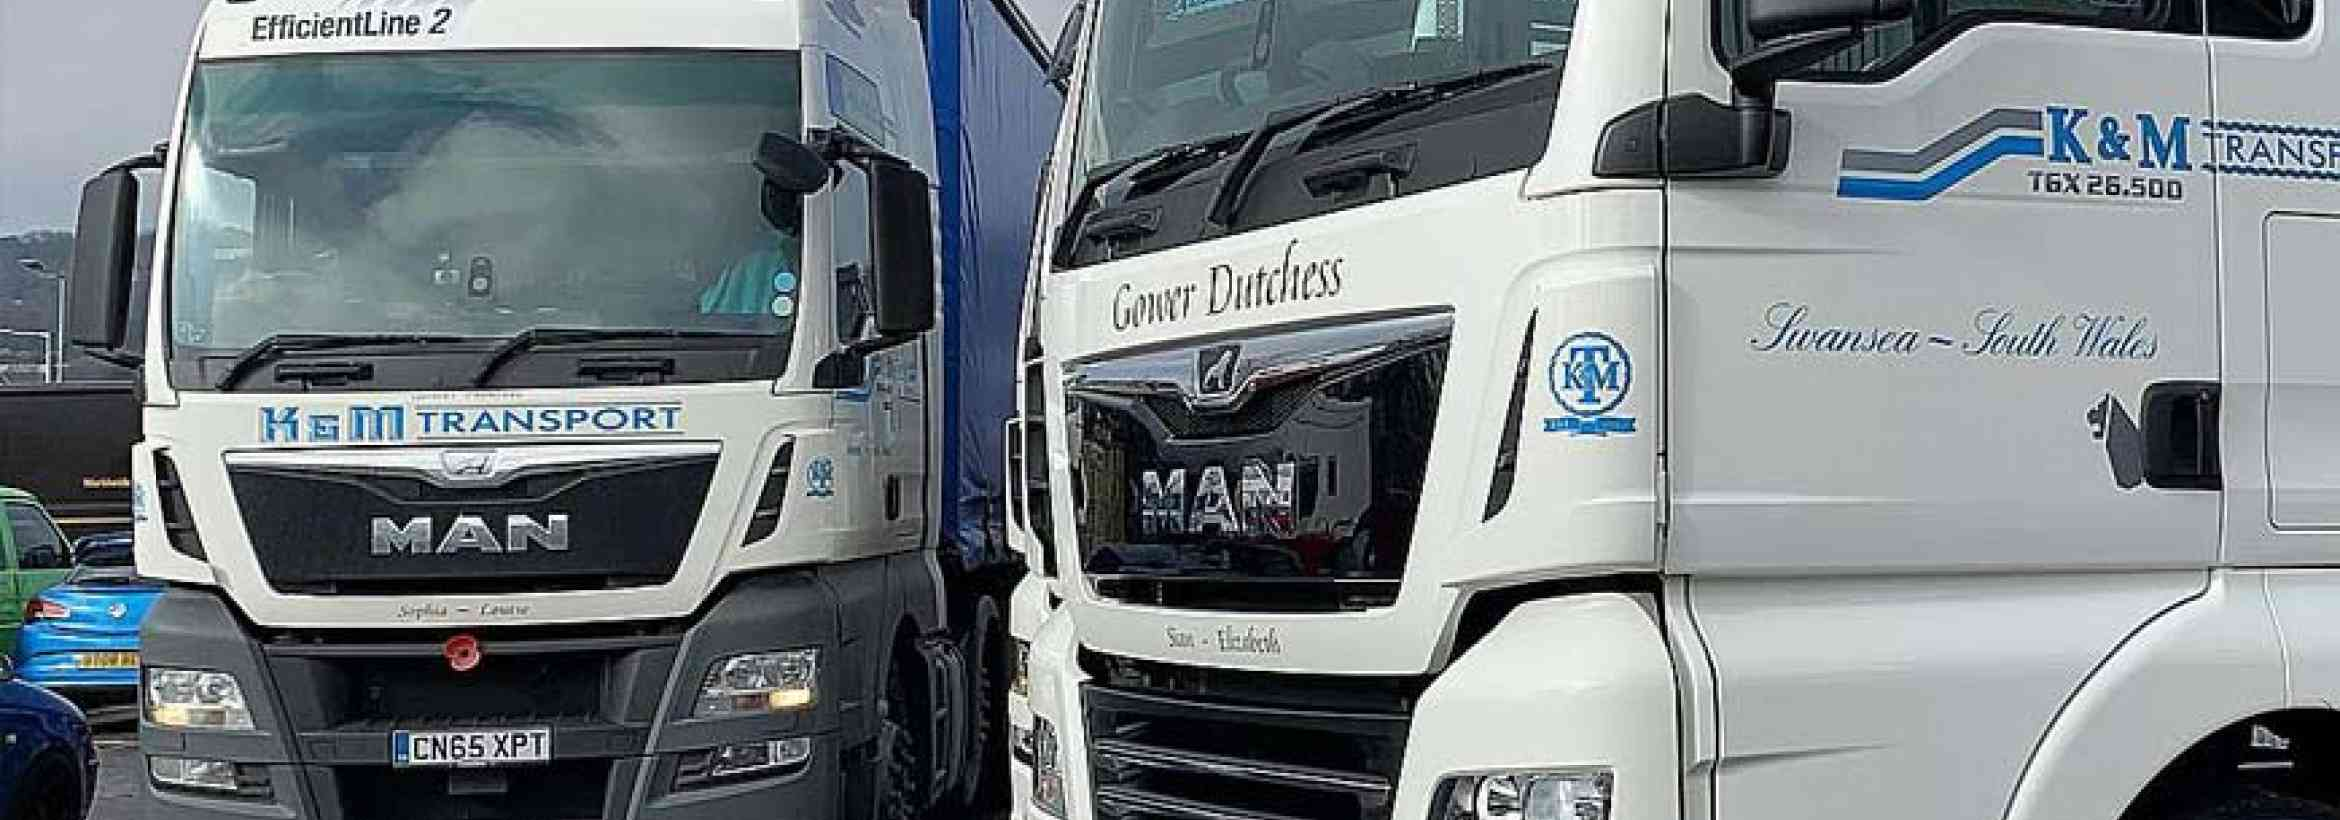 904d246d50 K   M Transport takes delivery of two new MAN tractor units